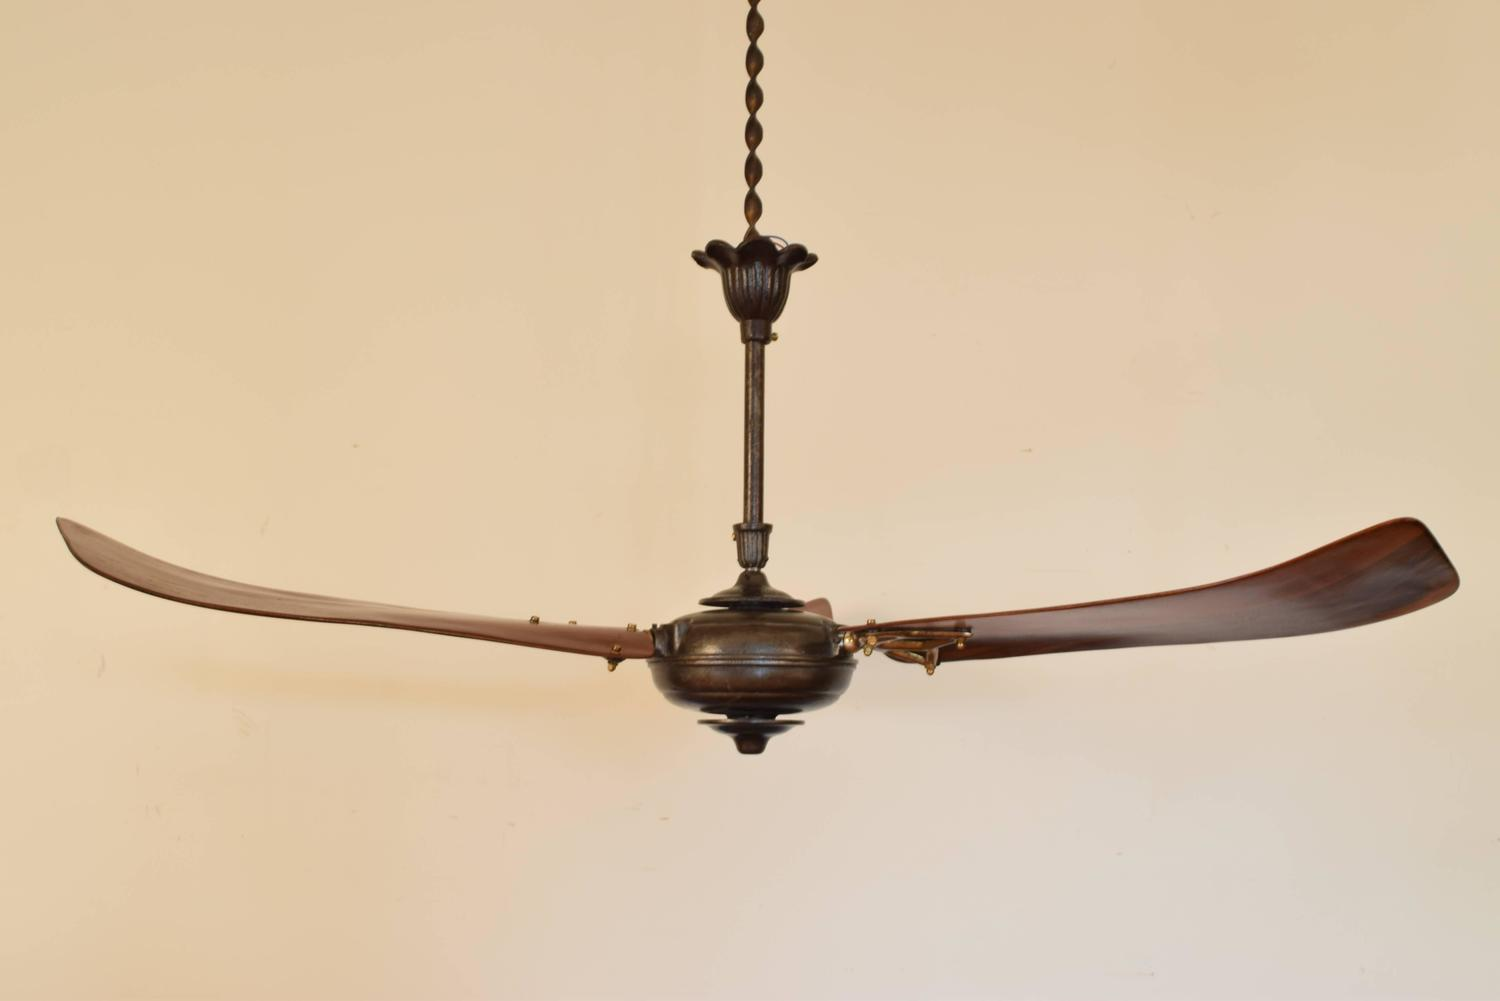 Italian Iron And Wooden Three Blade Ceiling Fan Circa 1900 At 1stdibs